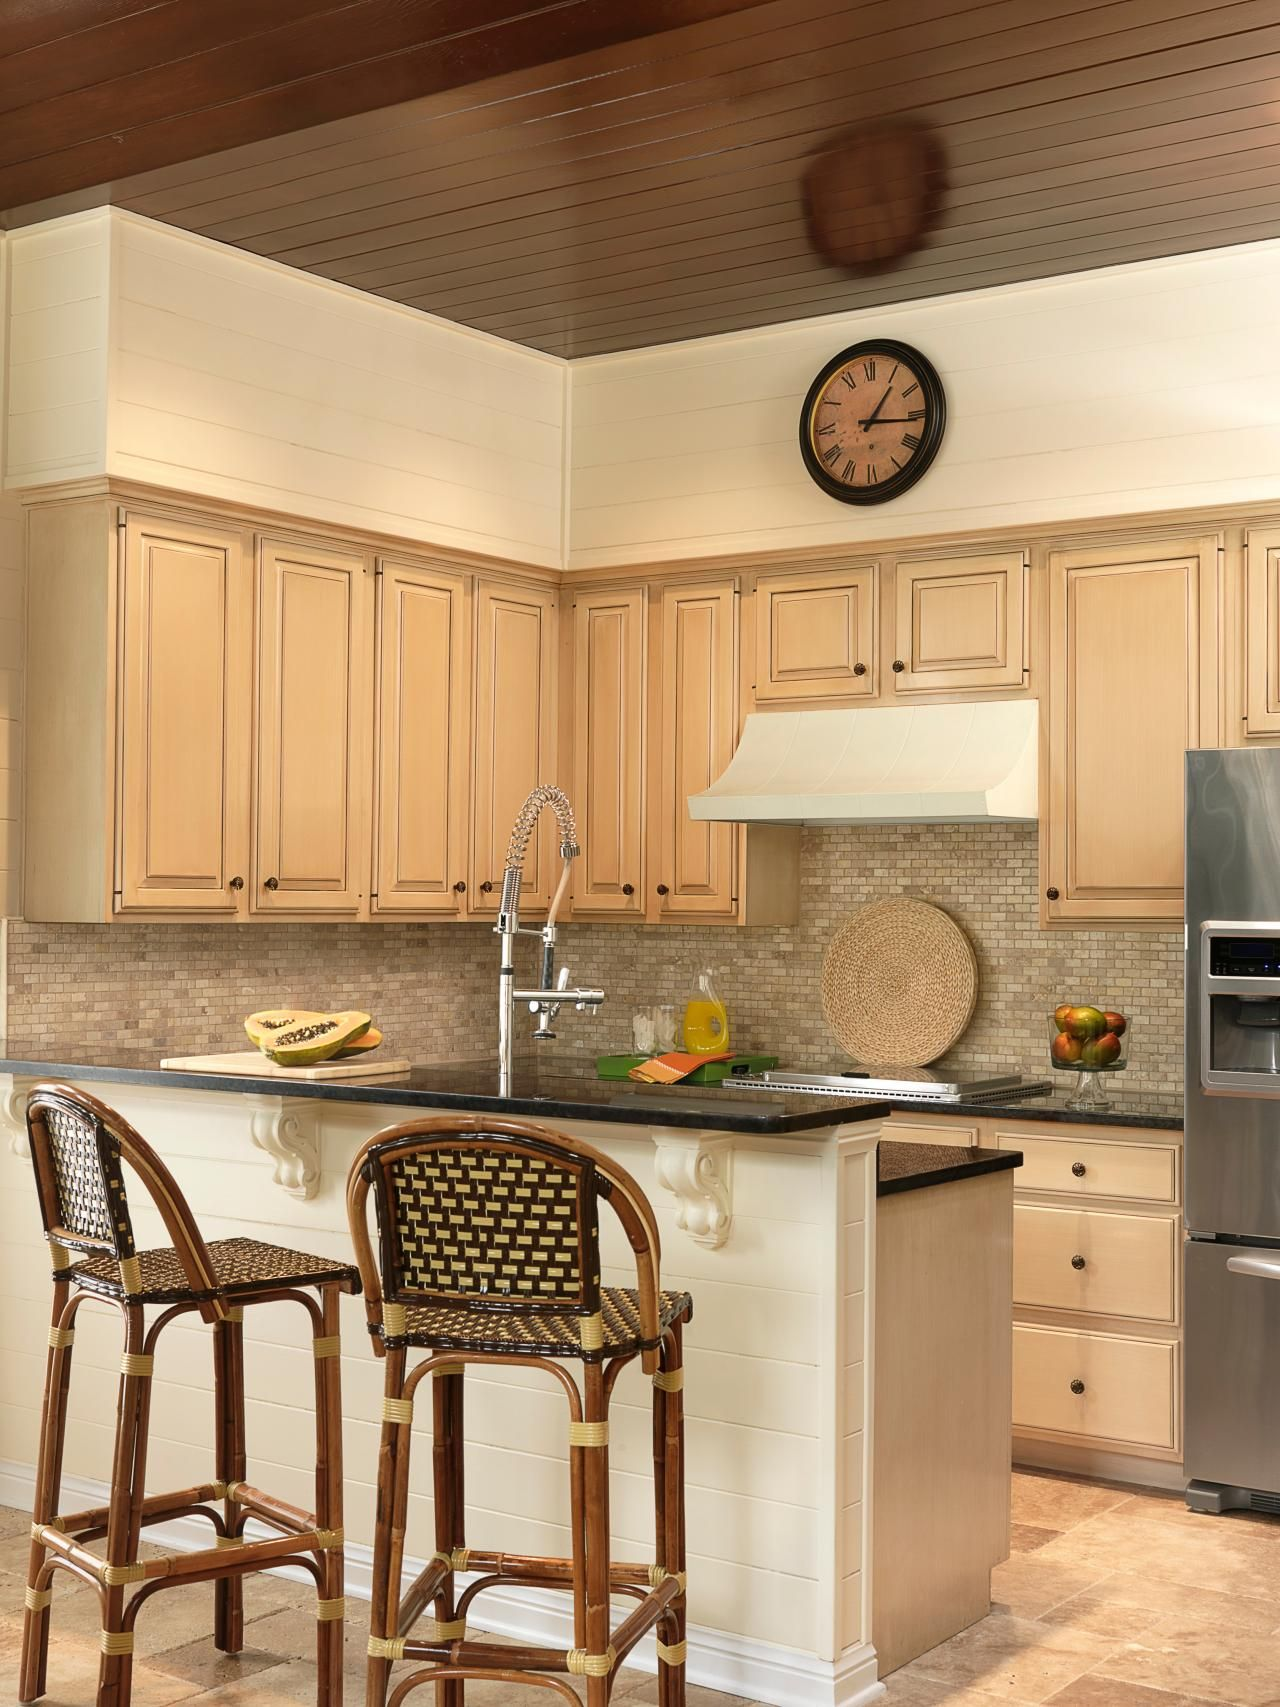 Transitional Small Kitchen With Breakfast Bar Kitchen Cabinets And Backsplash Small Kitchen Kitchen Decor Pictures